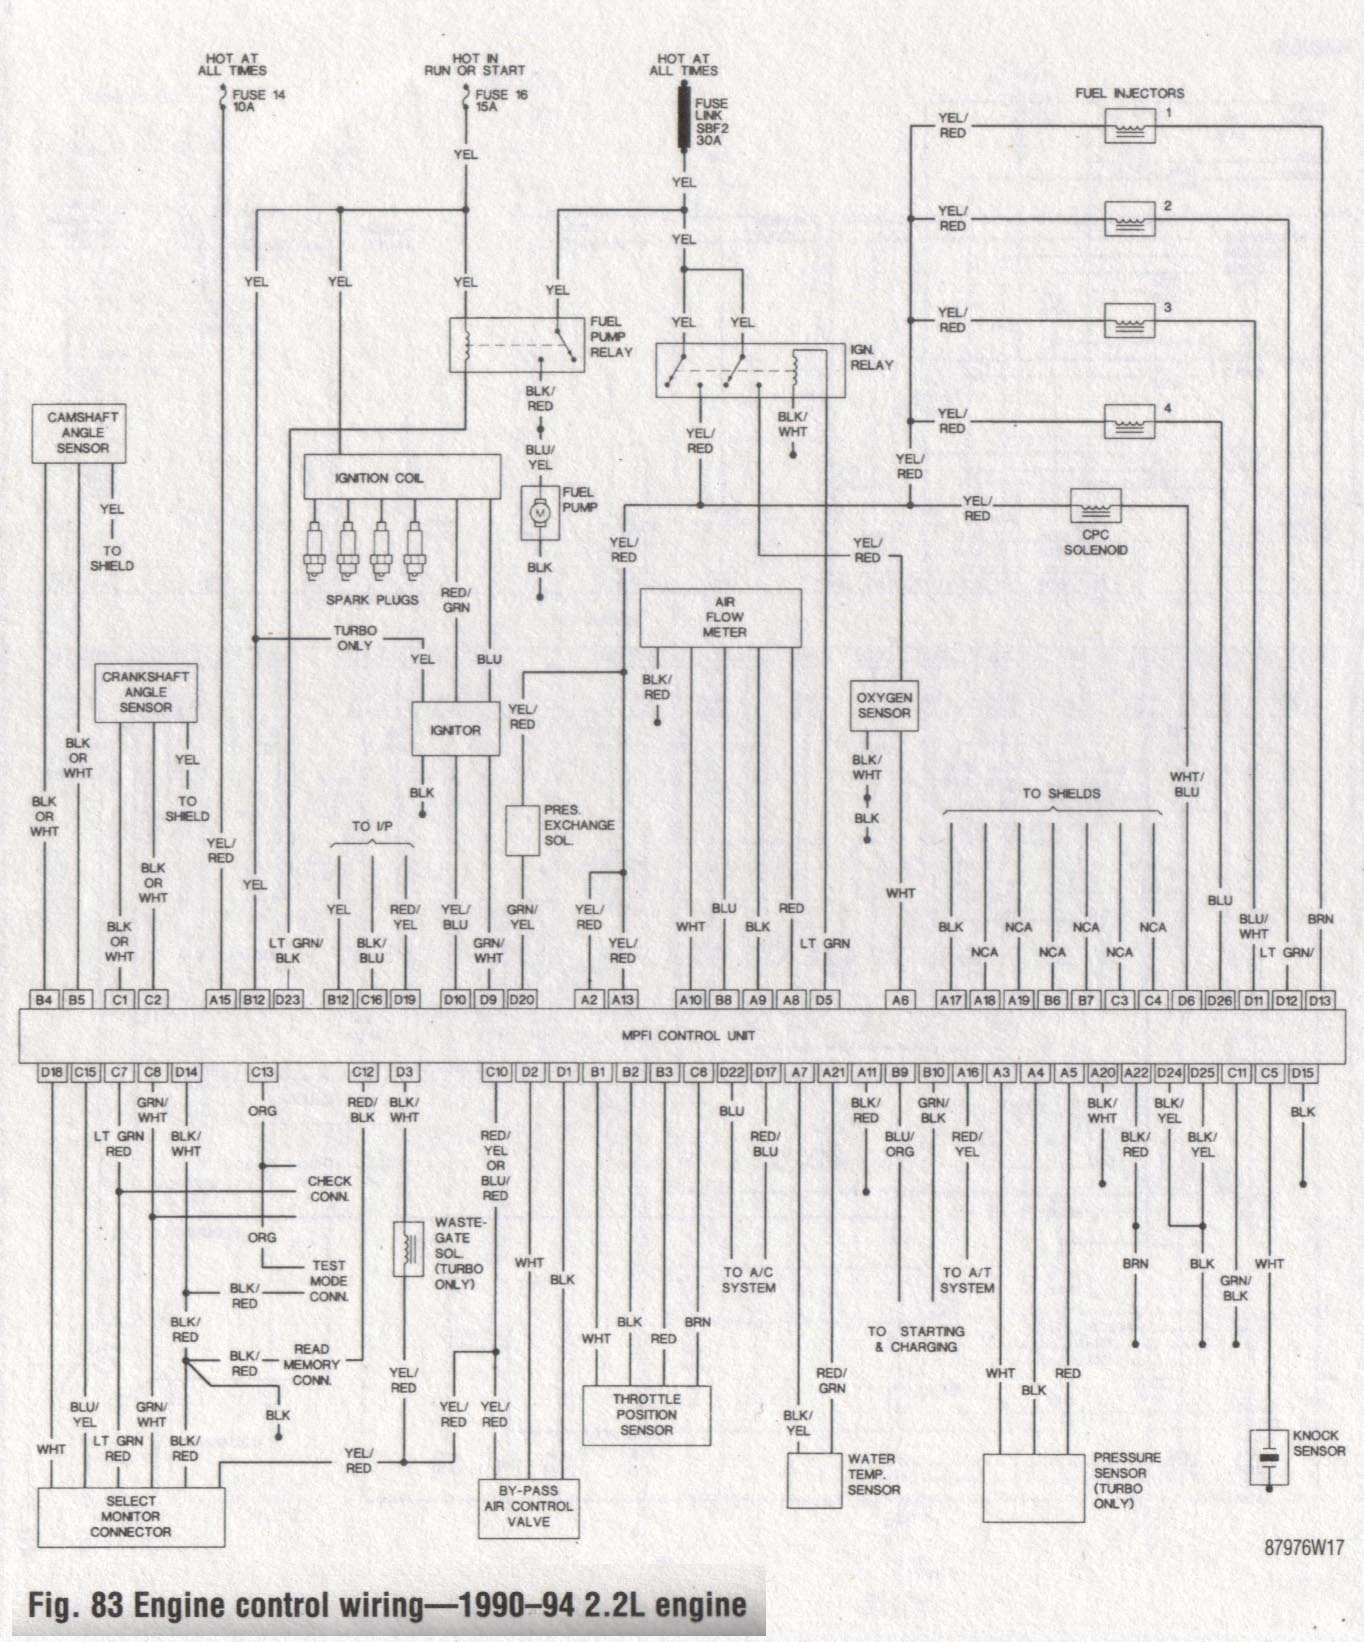 vanagon engine wiring diagram